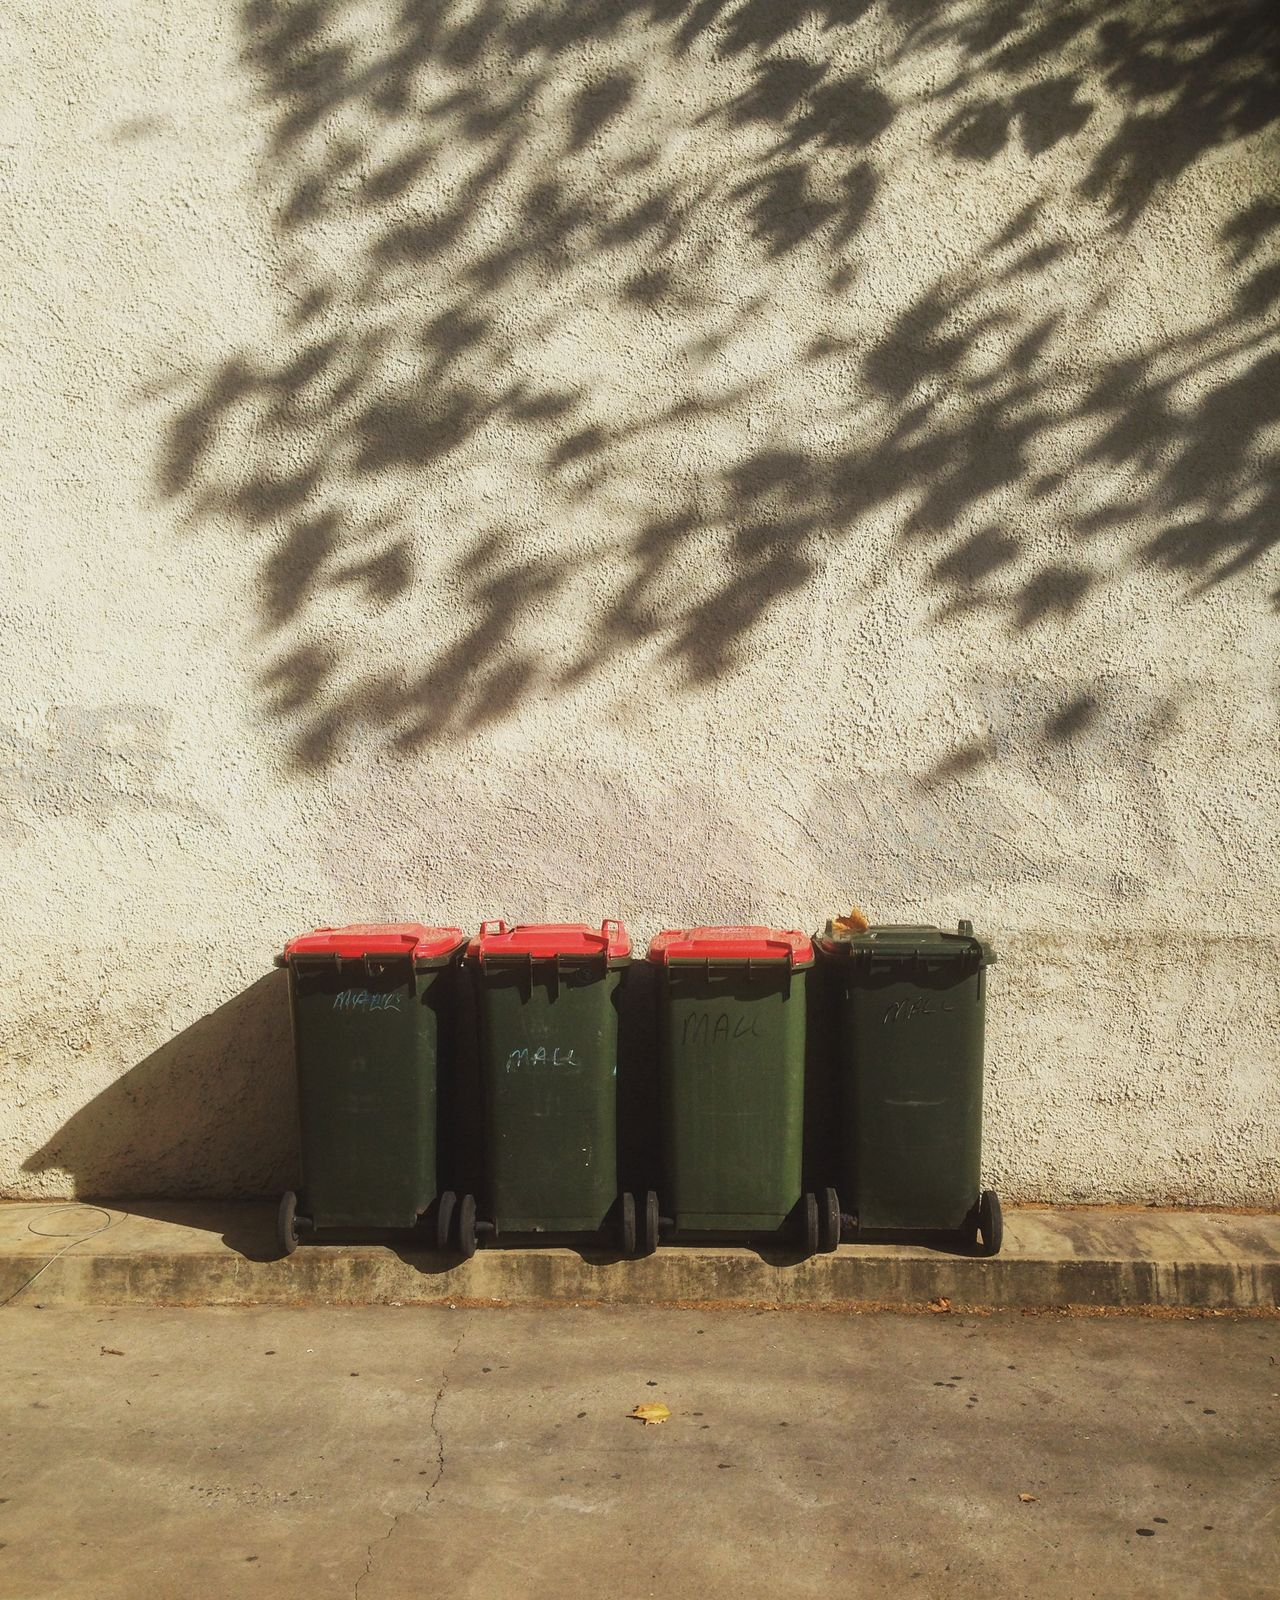 Bins & Shadows 02/06/16 Day Deterioration Factory Industry Leaves Light Light And Shadow No People Outdoors Pattern Rubbish Run-down Rural Scene Shadows Sky Stationary Street Photography Tree Trees Wall Fine Art Photography Adapted To The City The City Light